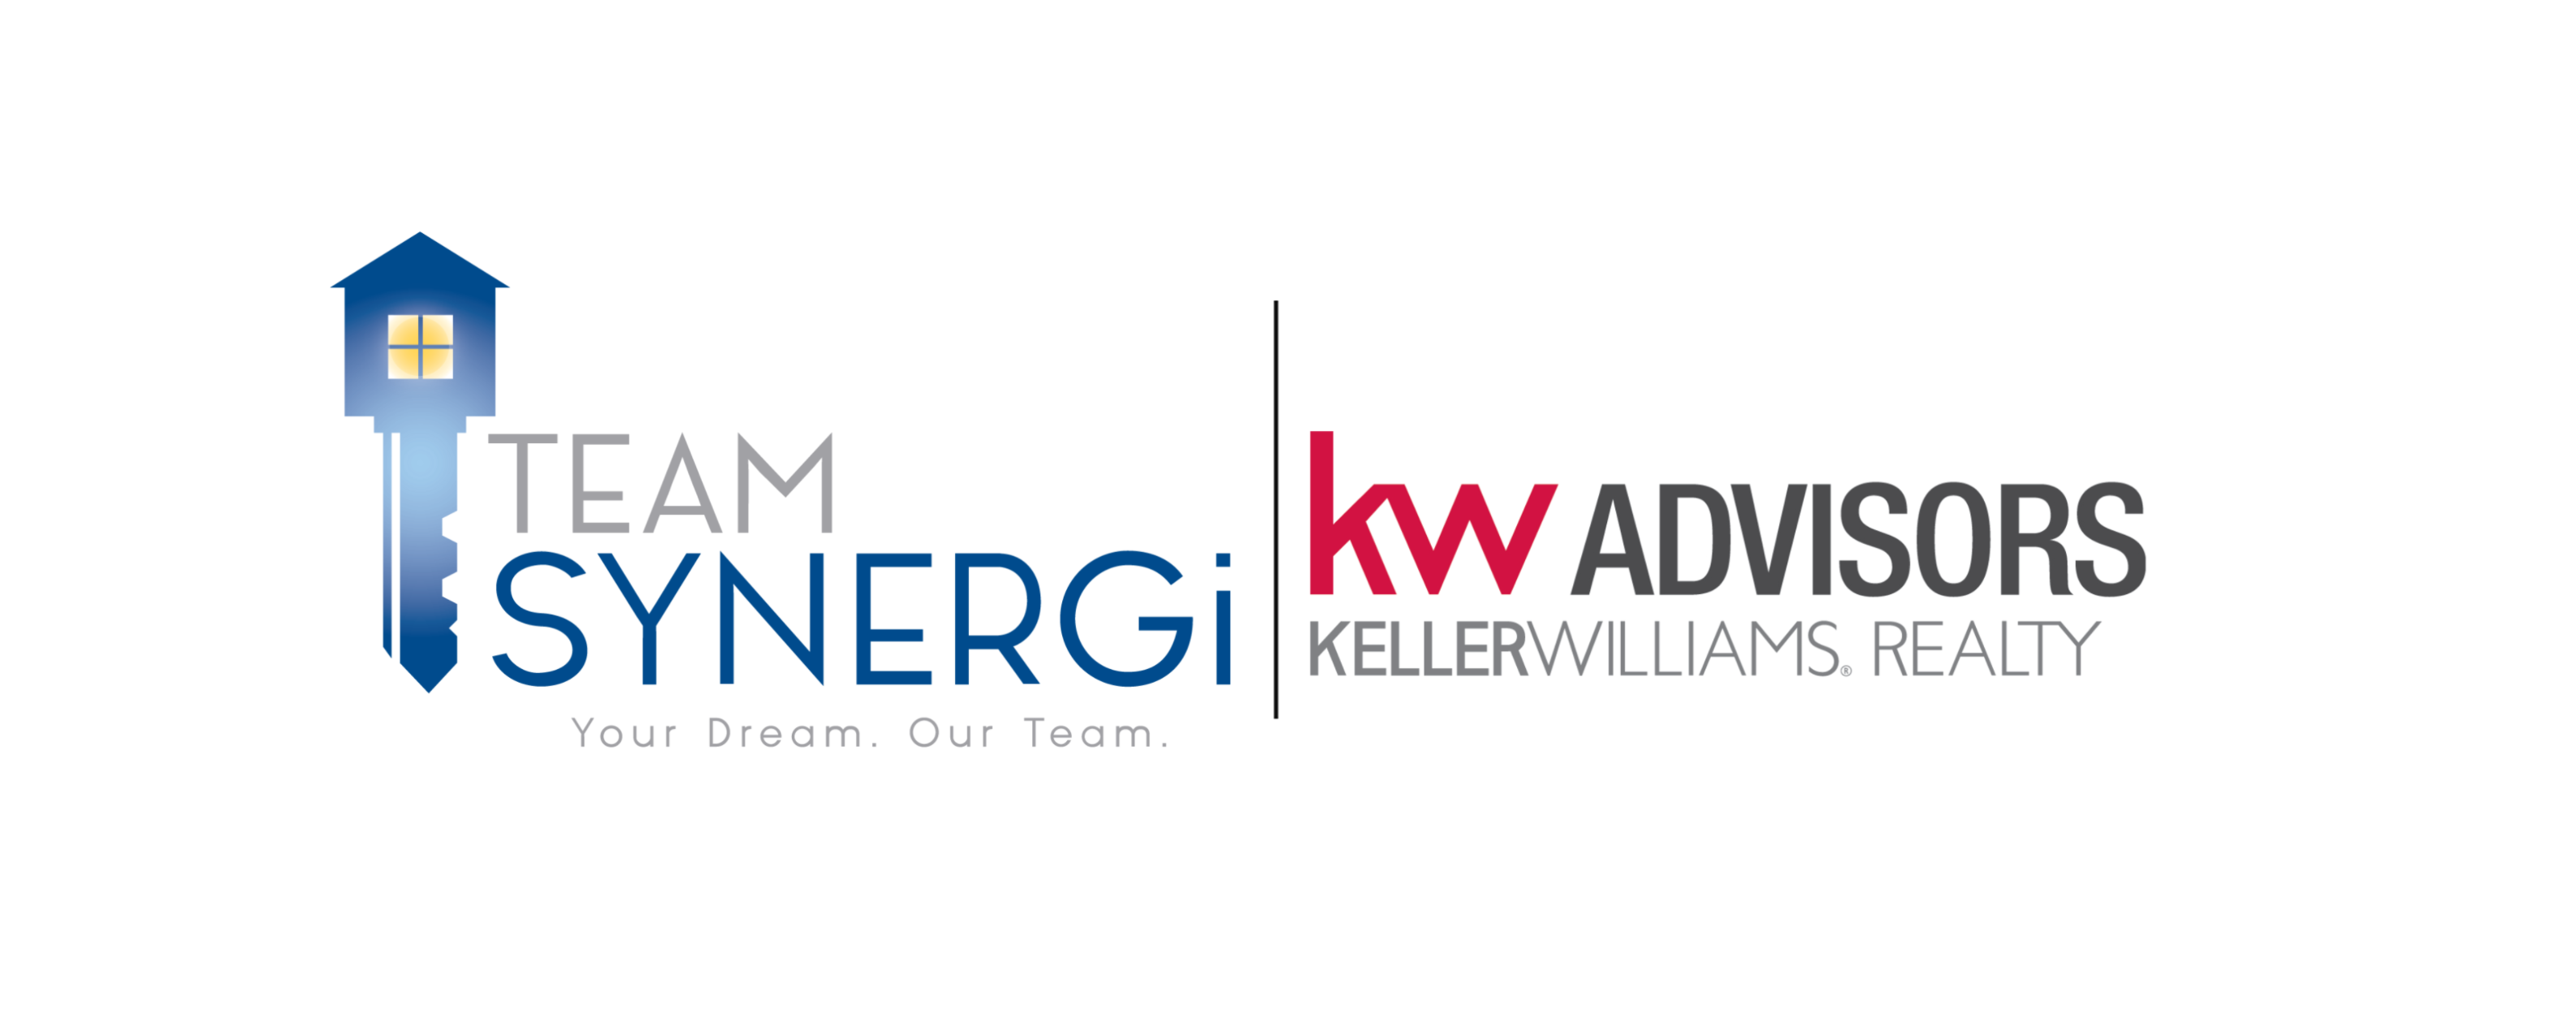 Team Synergi - Keller Williams logo